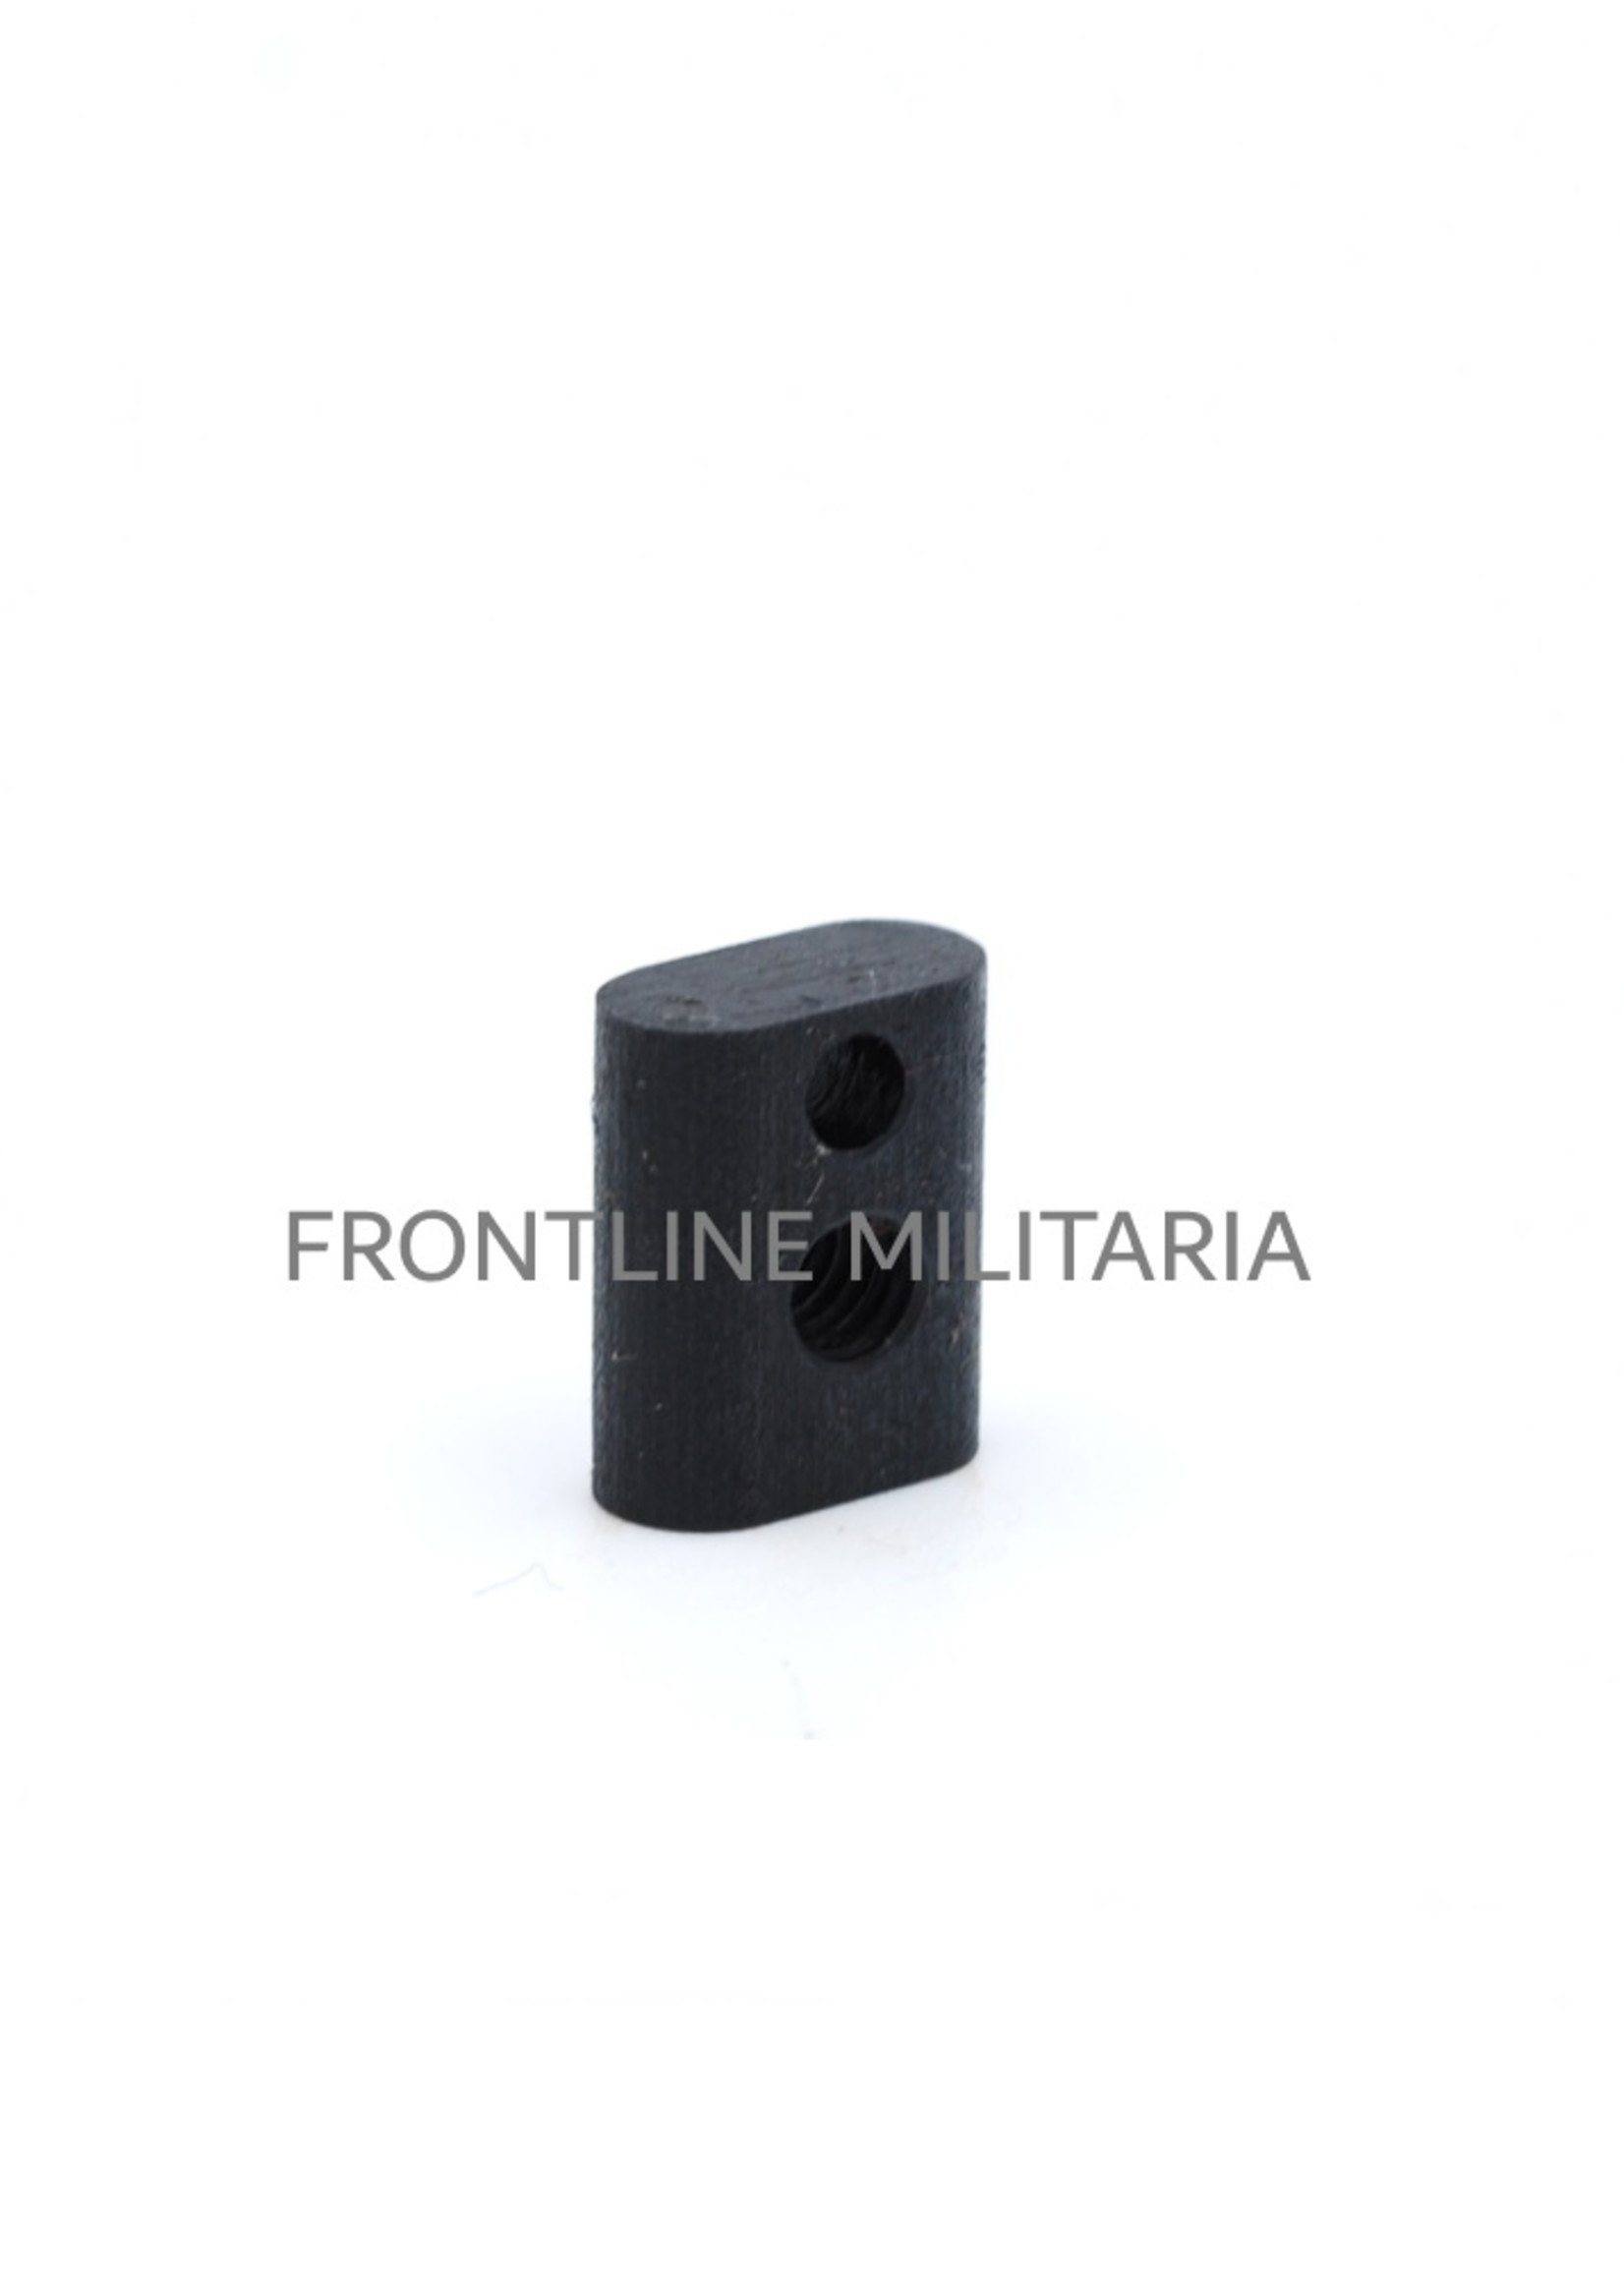 Cleaning rod nut for the G43 and K43 Rifle